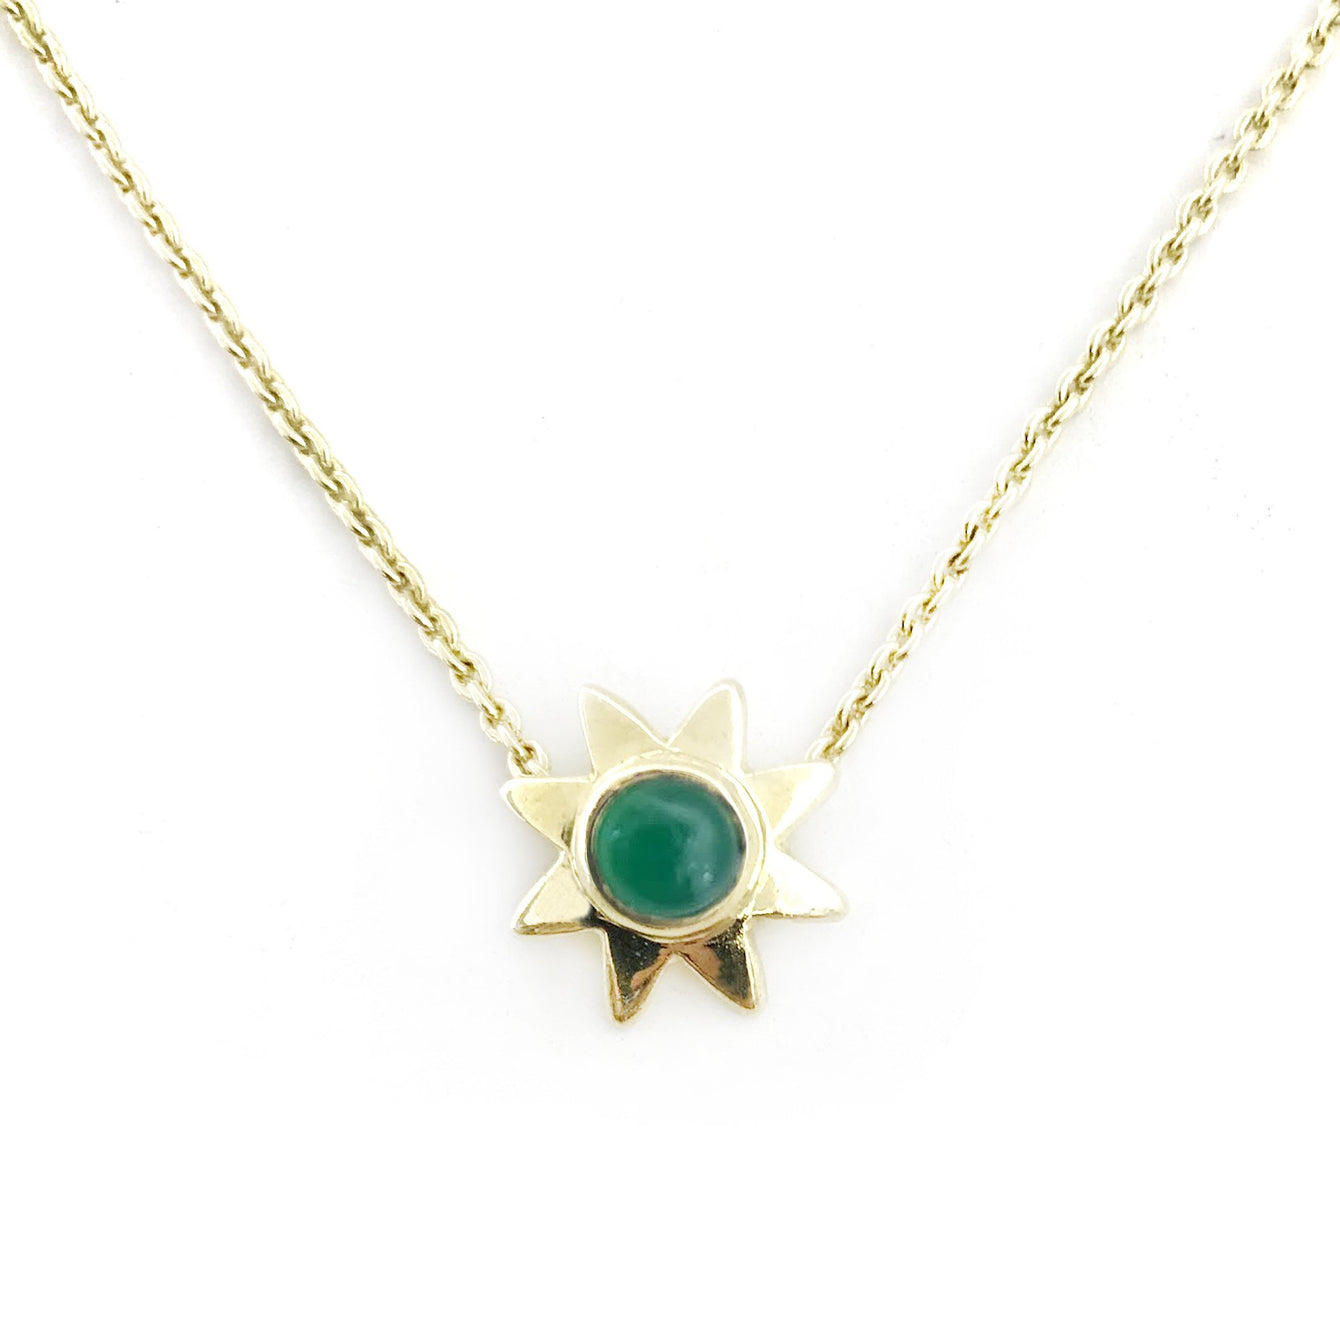 Starr Genuine Gemstone Pendant Necklaces-Women - Jewelry - Necklaces-ADDISON WEEKS-Emerald-Peccadilly